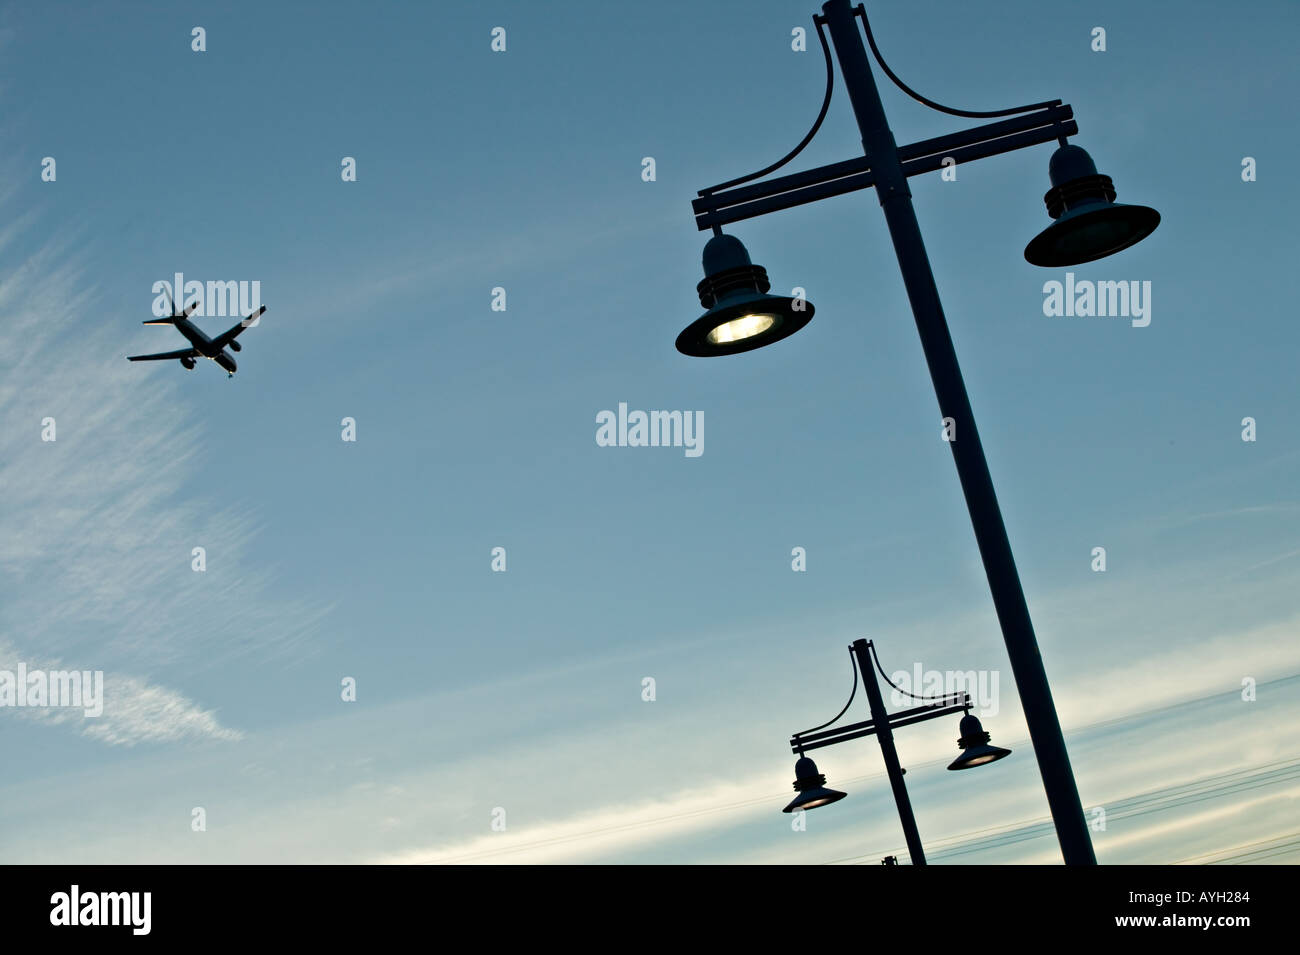 Commercial airliner takes off or landing - Stock Image